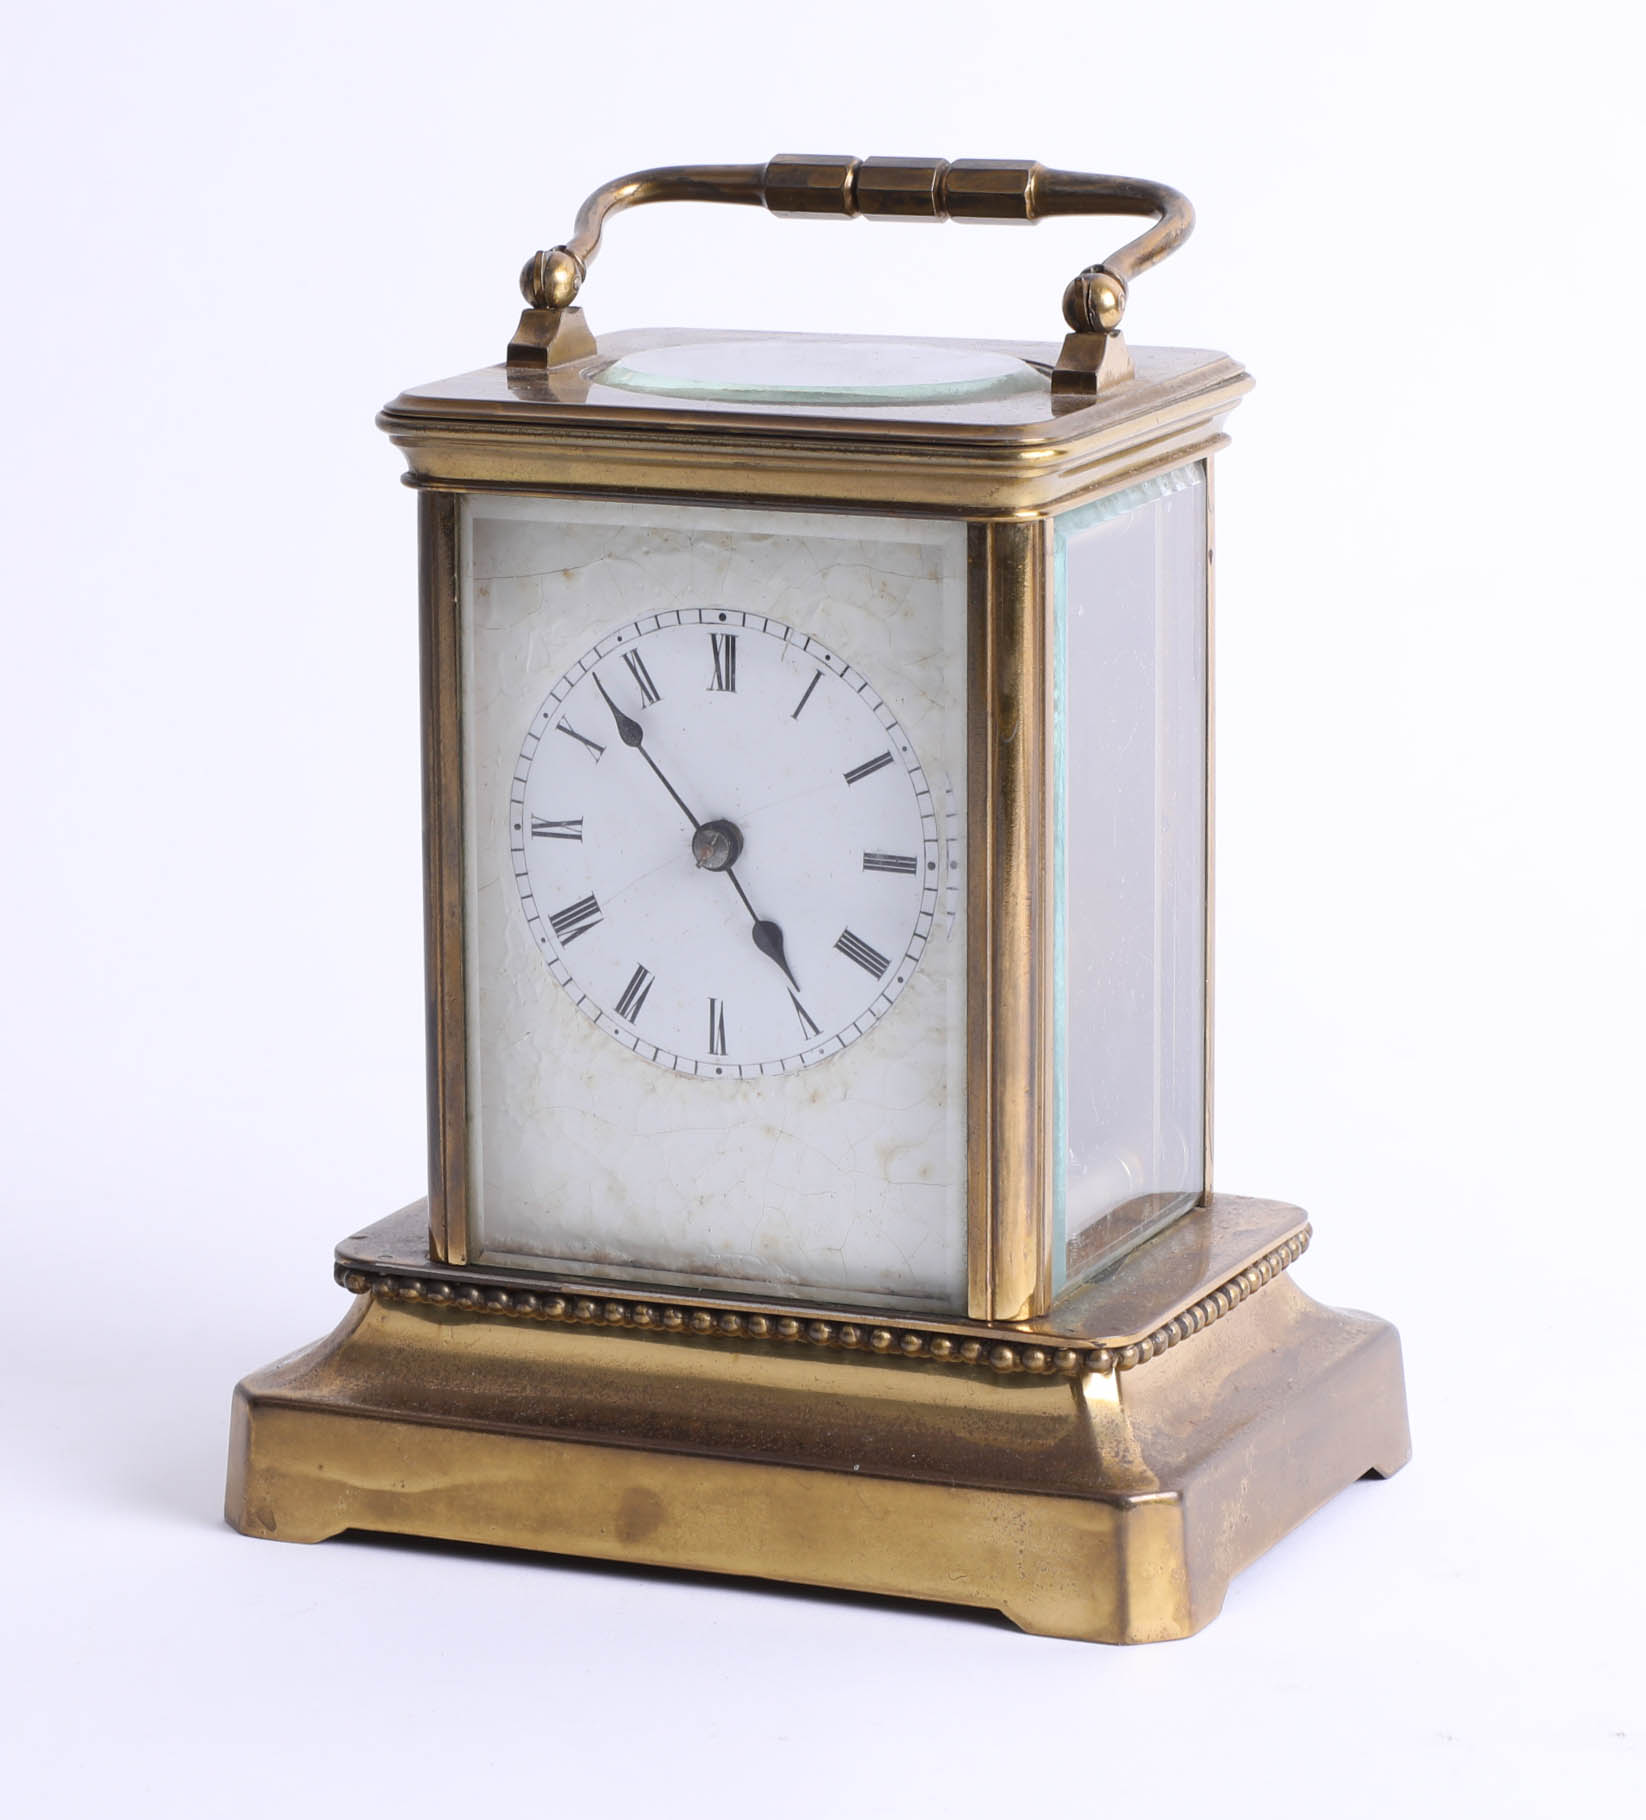 Lot 024 - A brass carriage clock on base, maker unknown, height 15cm.